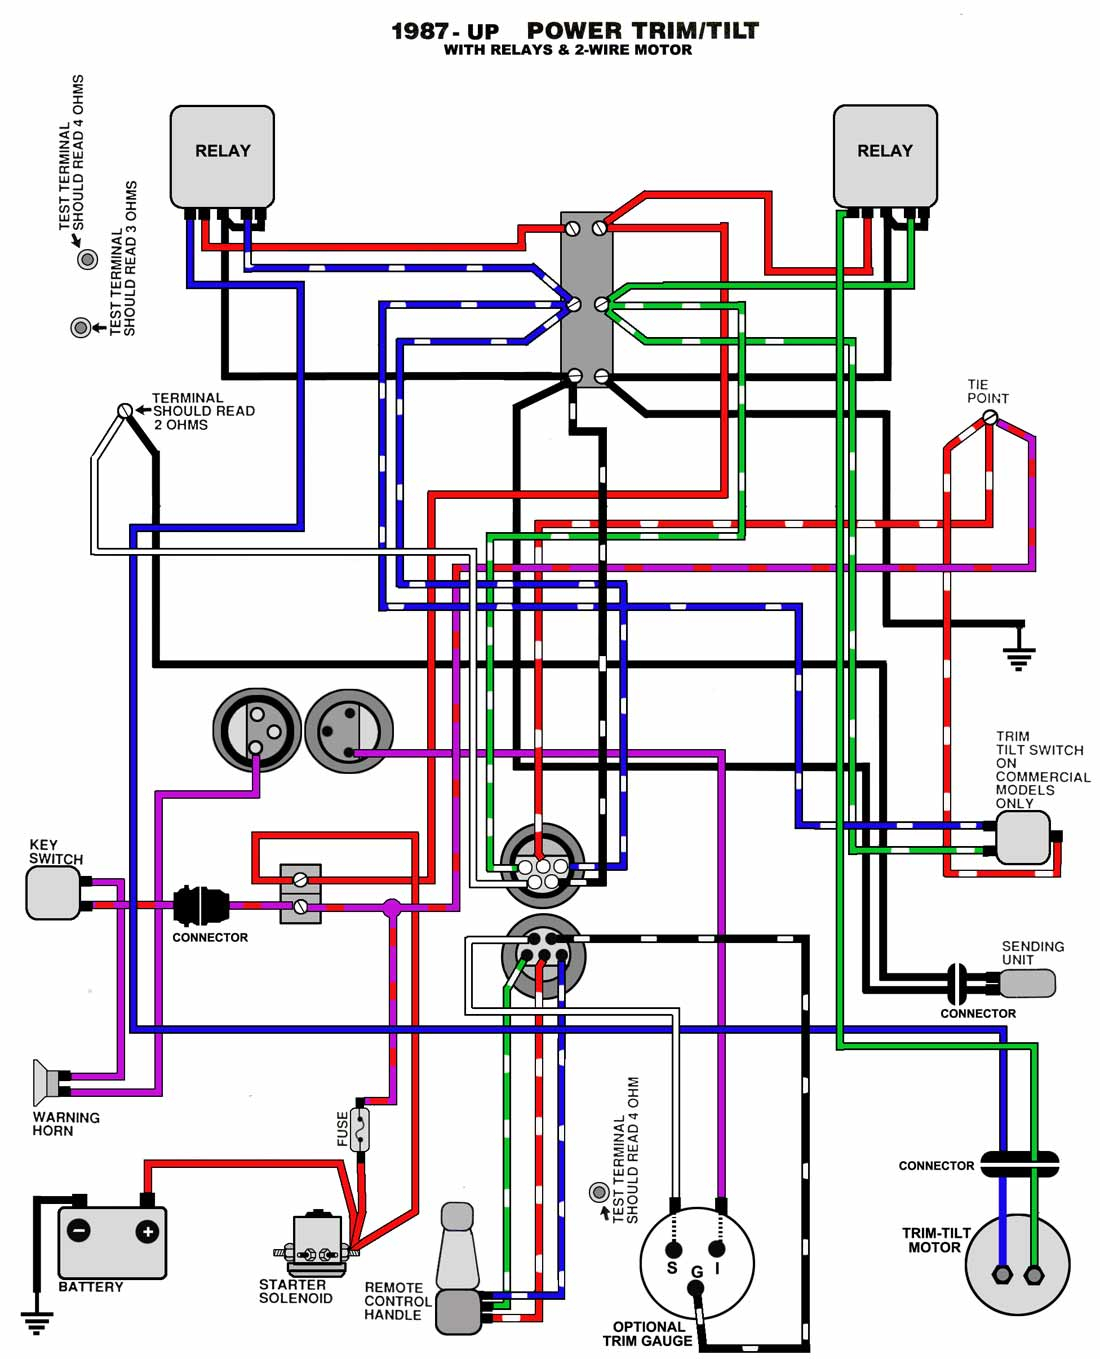 Omc 305 Wiring Harness - Wiring Diagram Data SCHEMA Evinrude Hp Outboard Wiring Diagram on evinrude e-tec outboard diagram, yamaha 90 hp outboard diagram, evinrude 48 spl diagram, evinrude engine parts diagram,